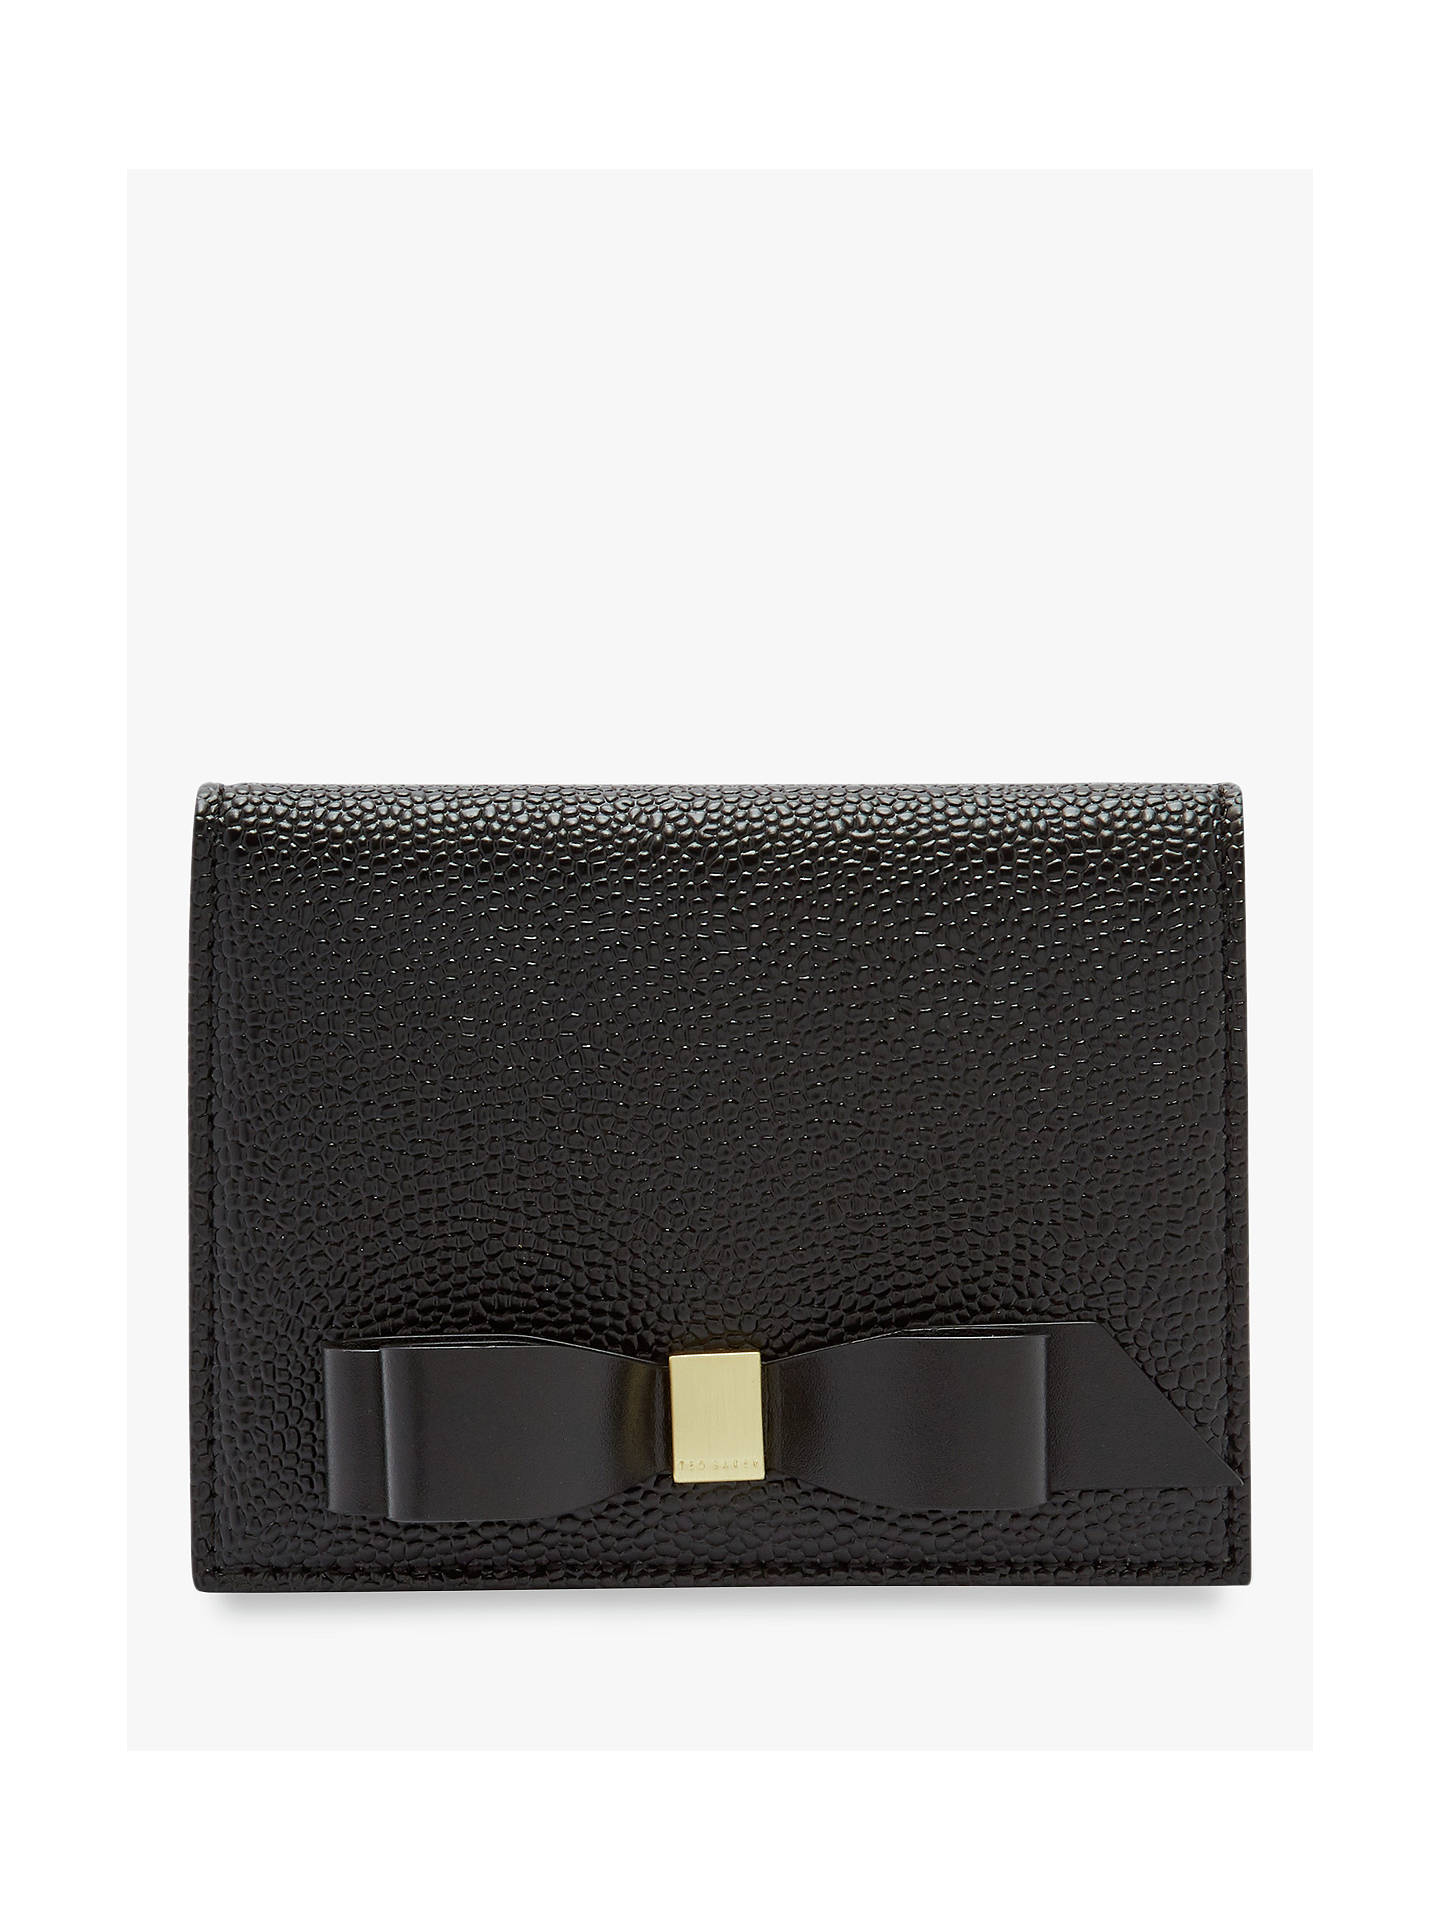 110f3ed537f Buy Ted Baker Elodiey Leather Small Purse, Black Online at johnlewis.com ...